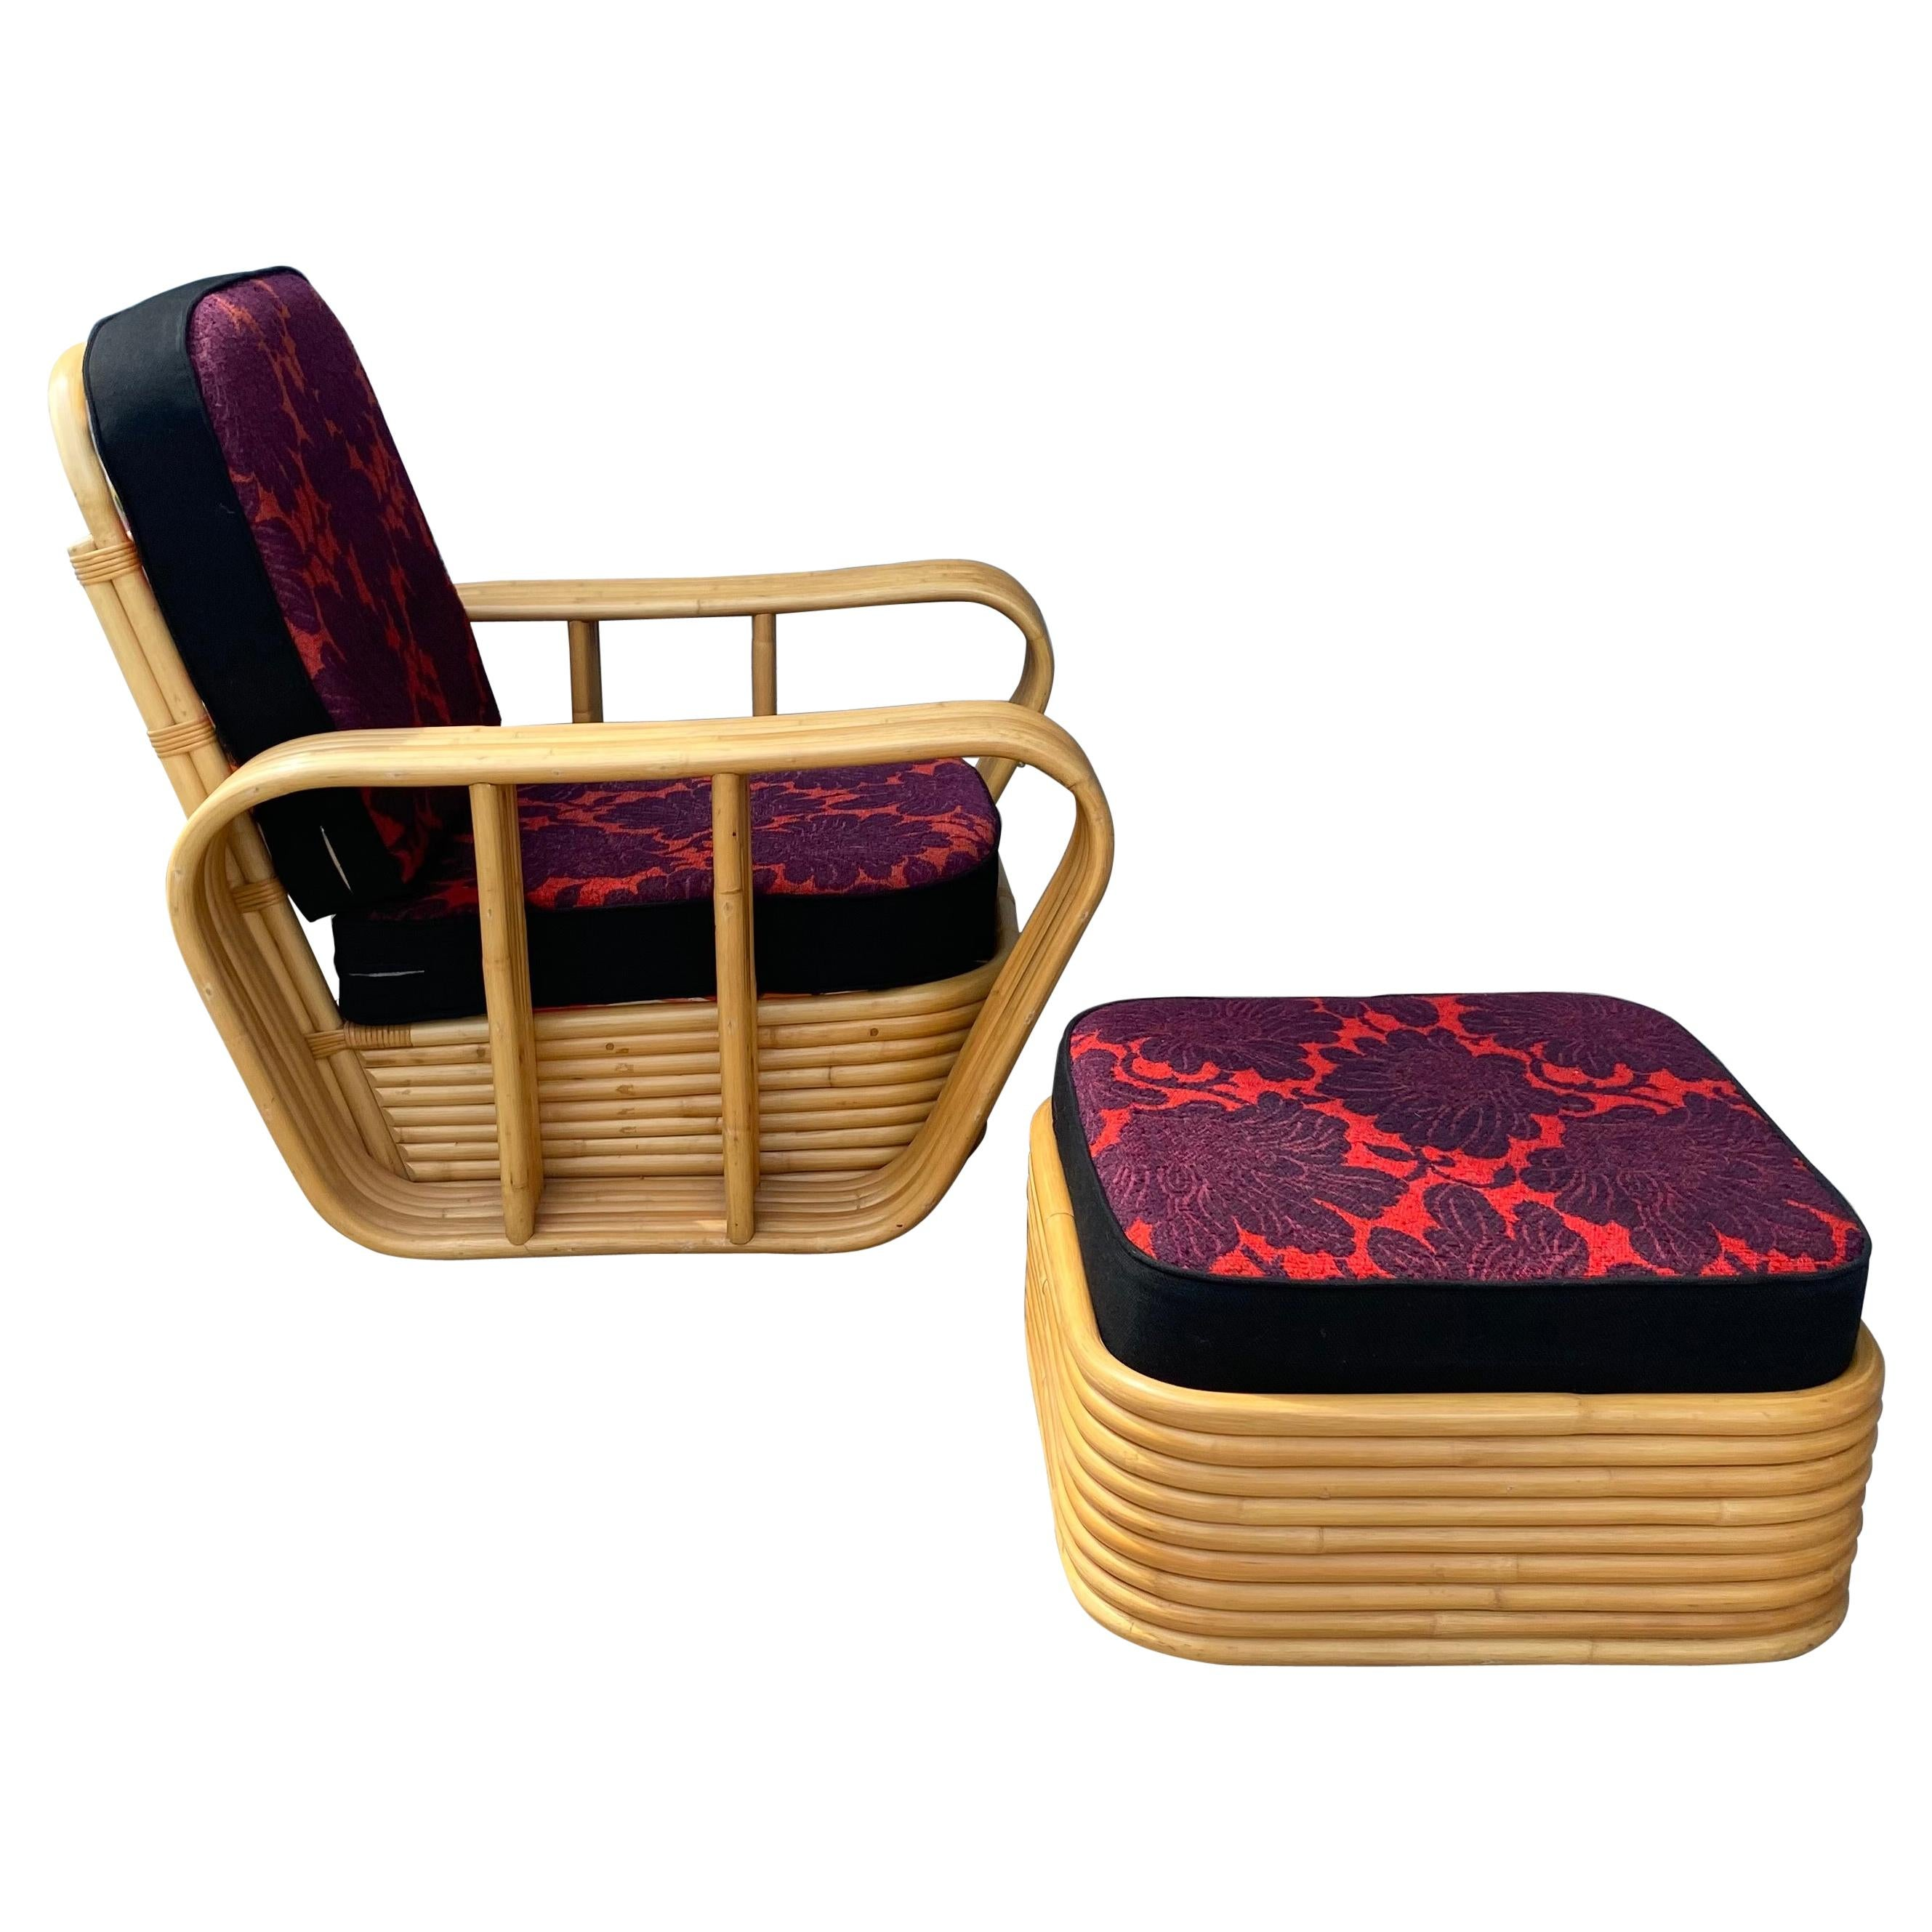 1950s  6 Band Bamboo Lounge Chair and Ottoman, Art Deco